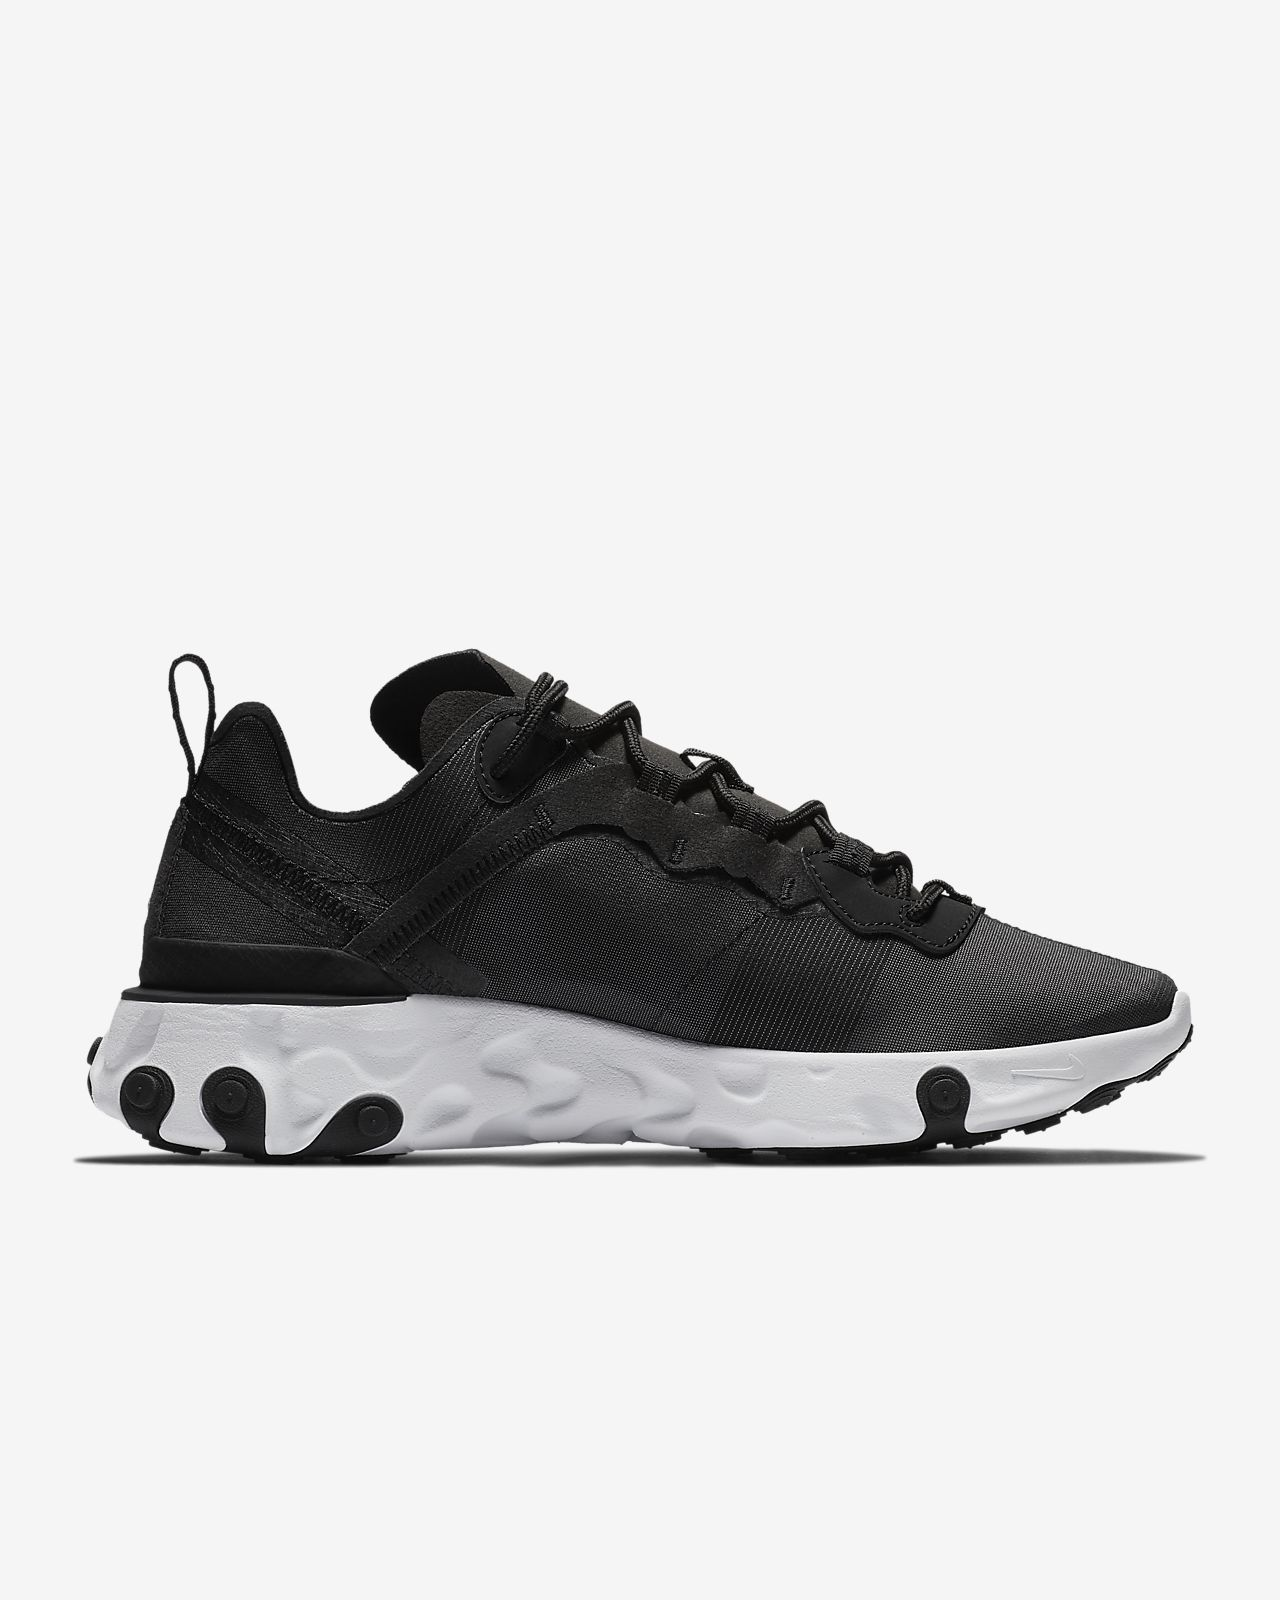 Special Prices on Nike React Element 55 sneakers in black